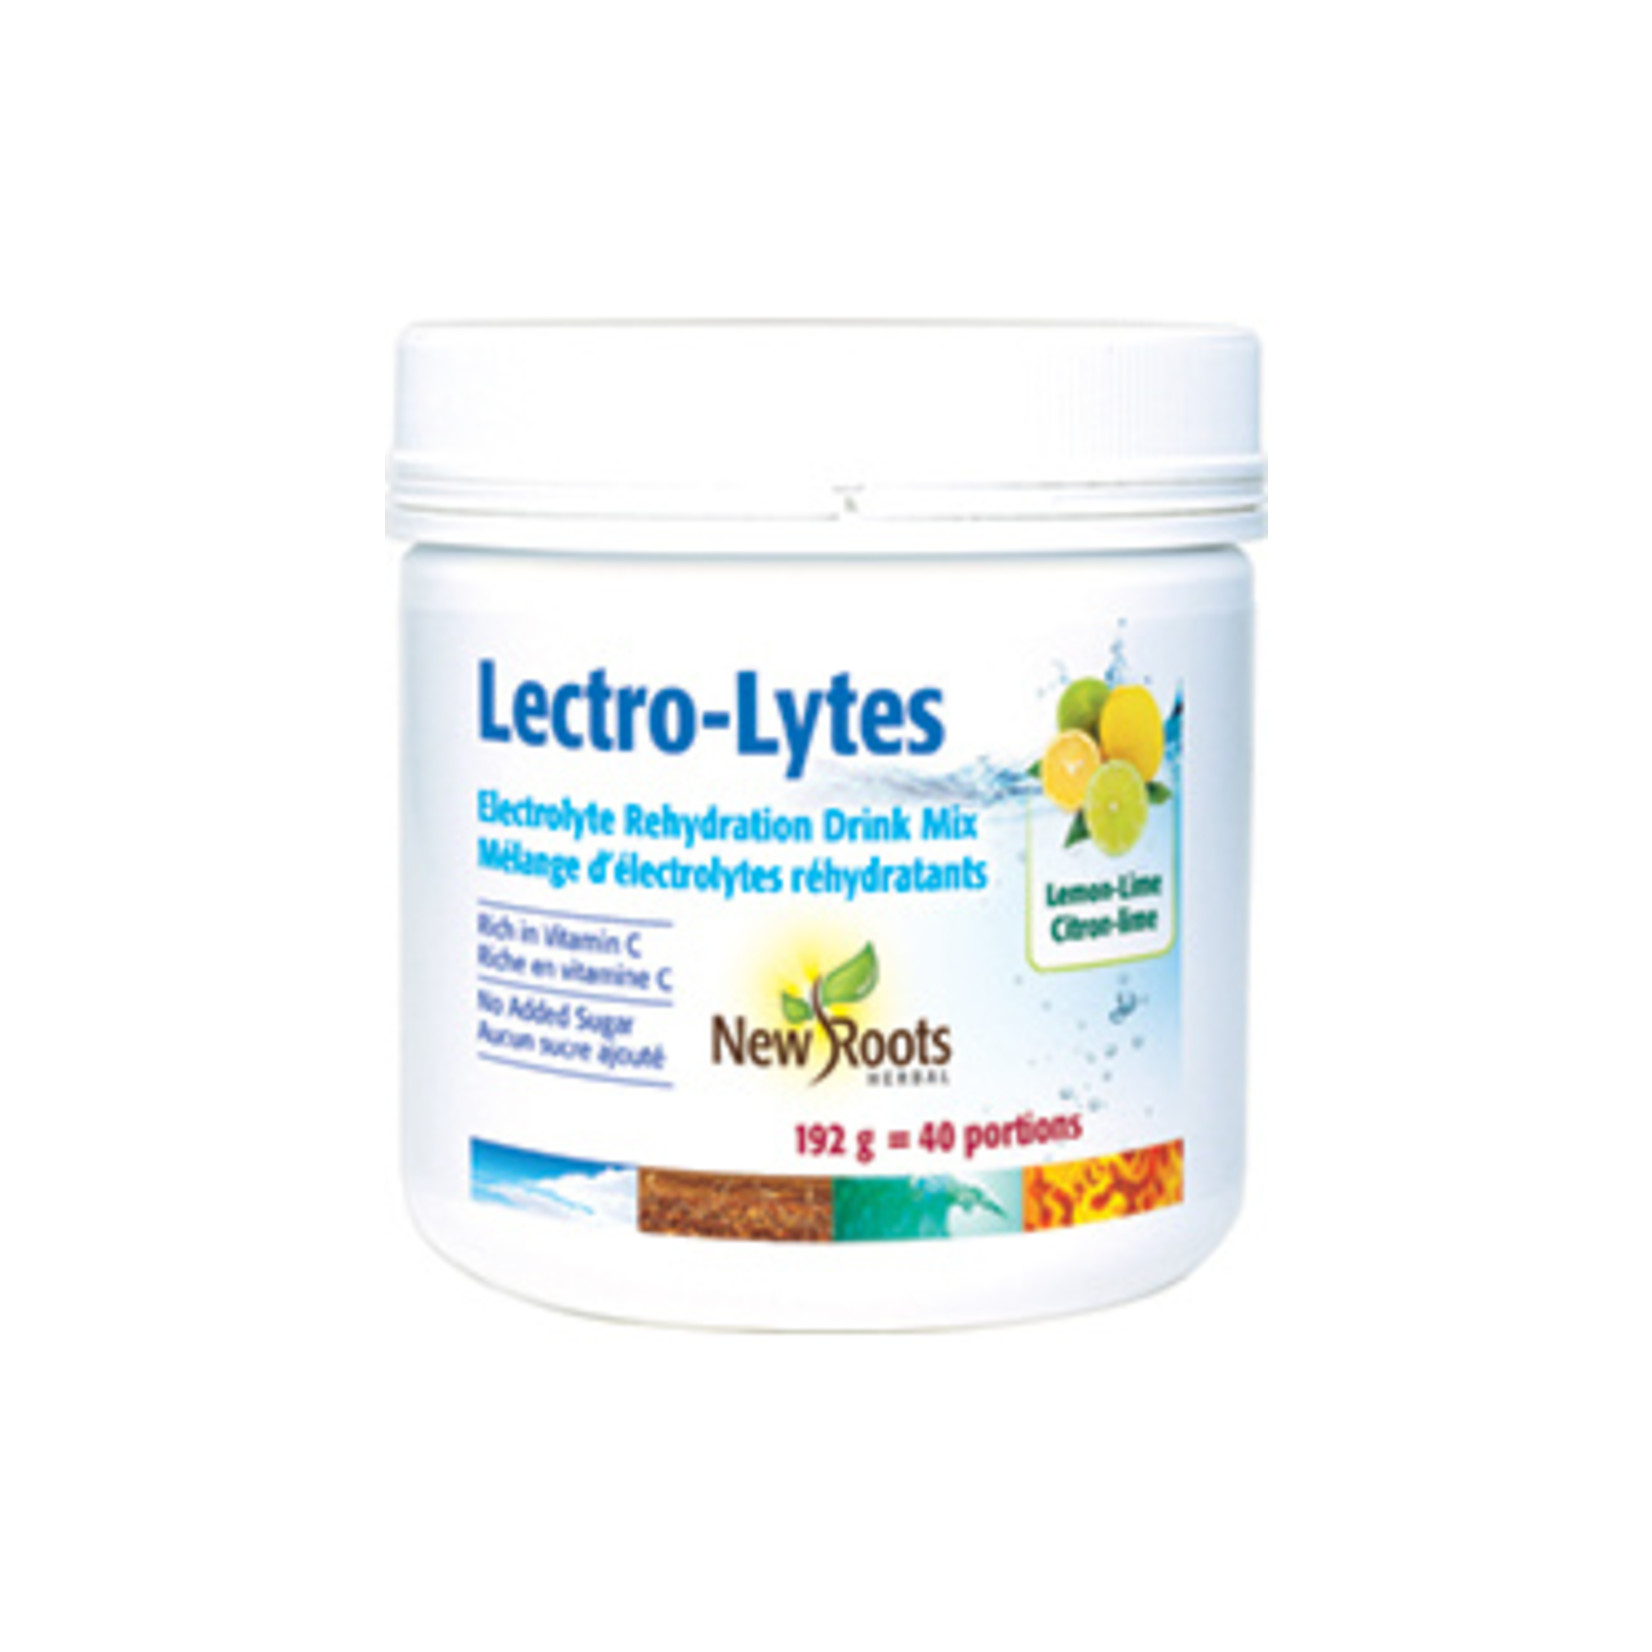 New Roots Lectro-lytes Electrolyte Rehydration Drink Mix Lemon Lime 168g